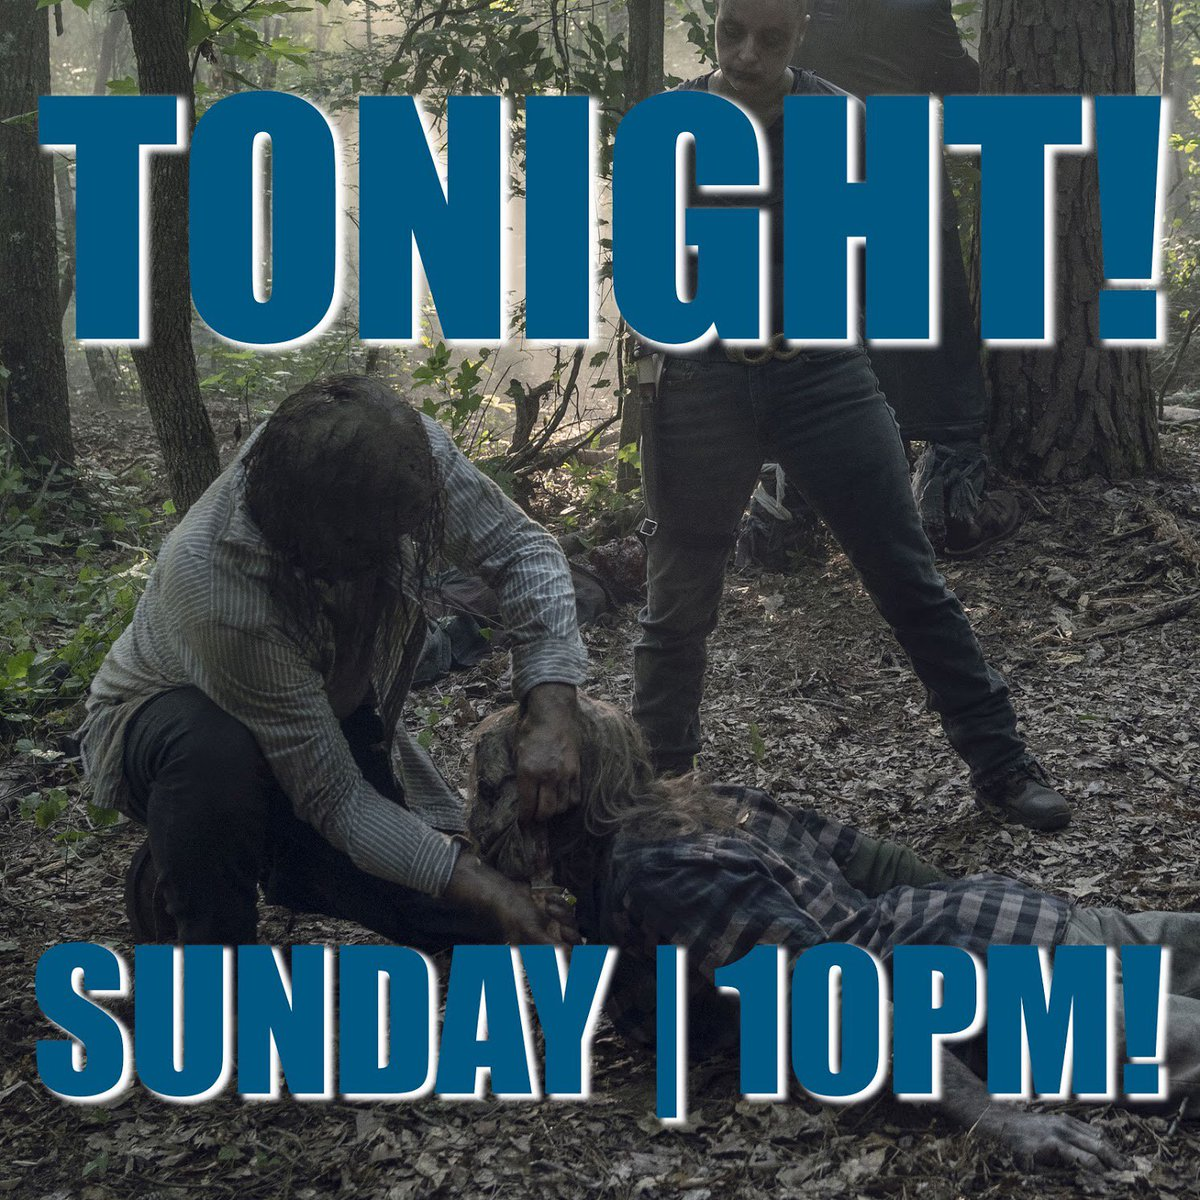 """When you're done picking your jaw up off the floor after tonight's episode of #TWD, don't forget that #TalkingDead is on LIVE right after! Our guests are Eleanor Matsuura (Yumiko), Angel Theory (Kelly), and """"This Is Us"""" star / #TWD fan Chris Sullivan!"""